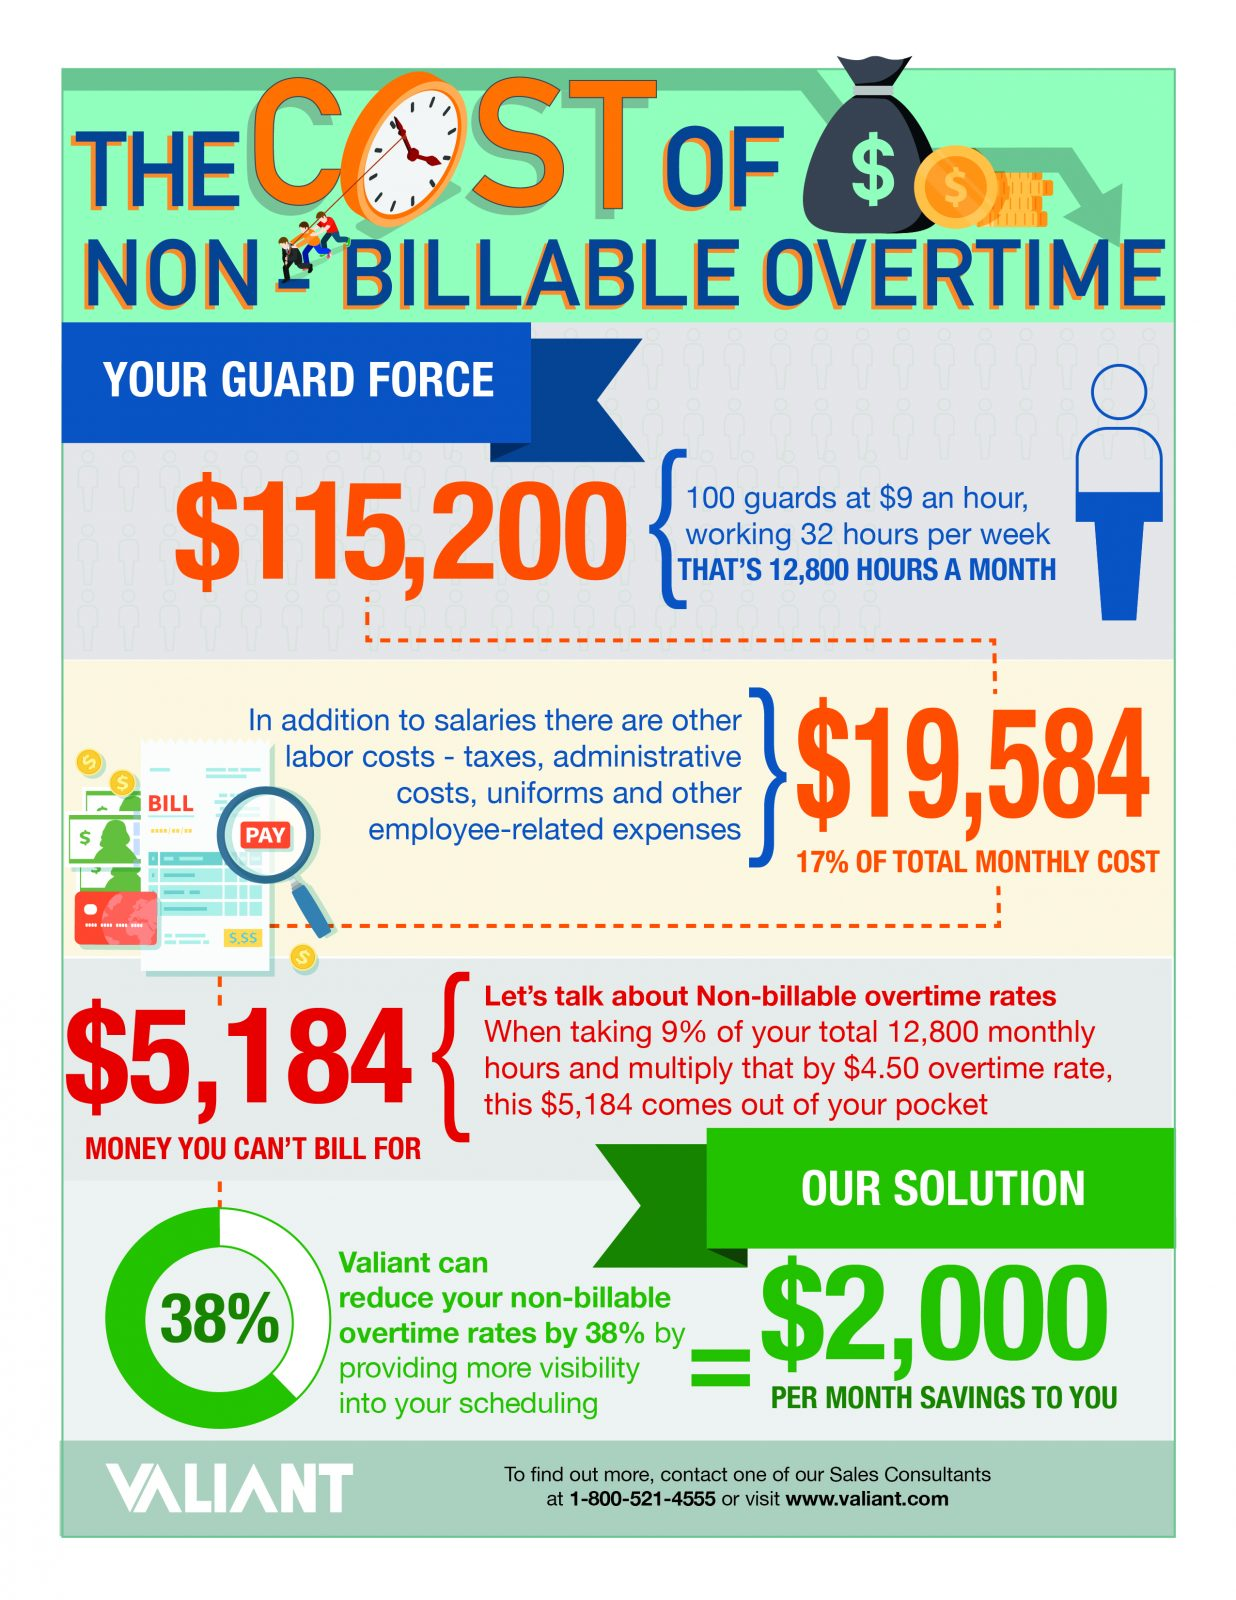 The Cost of Non-Billable Overtime